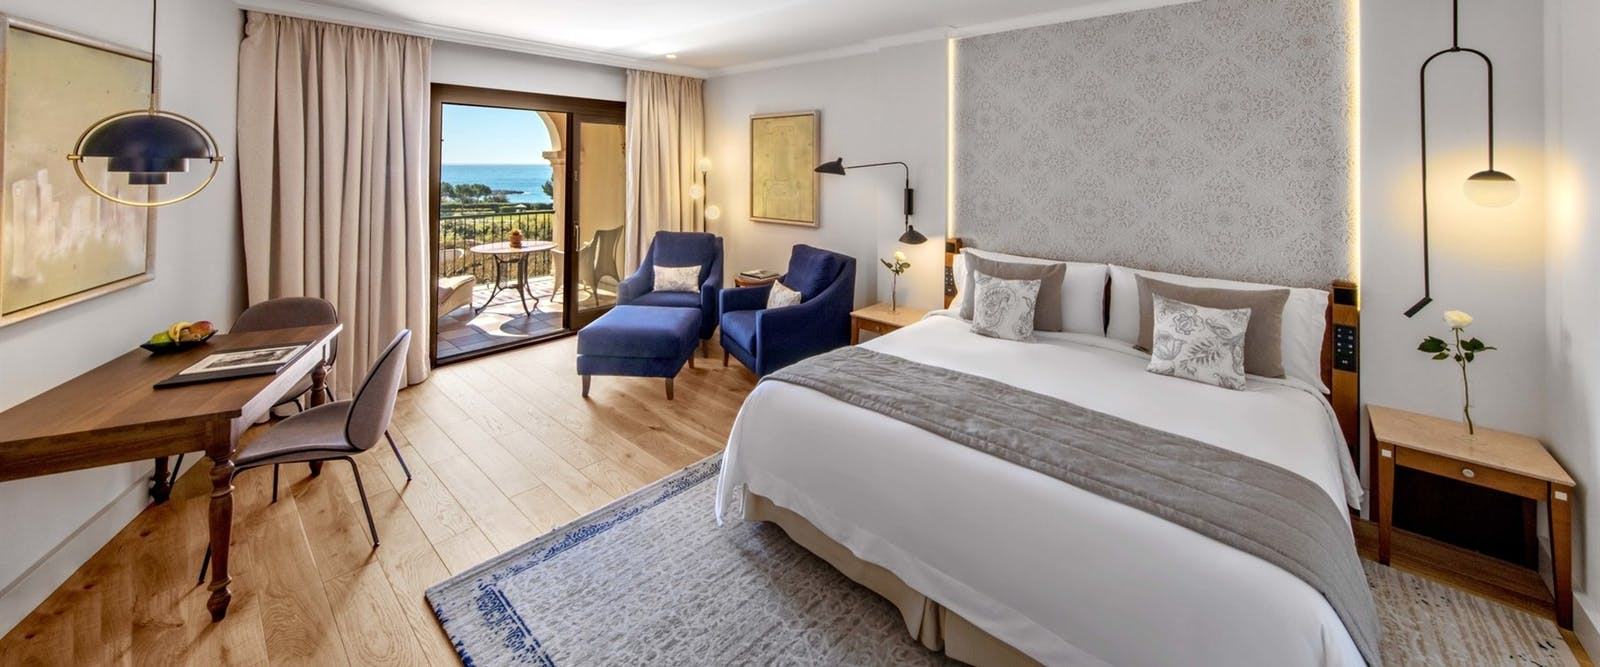 Blue Oasis Bedroom at The St Regis Mardavall Mallorca Resort, Spain